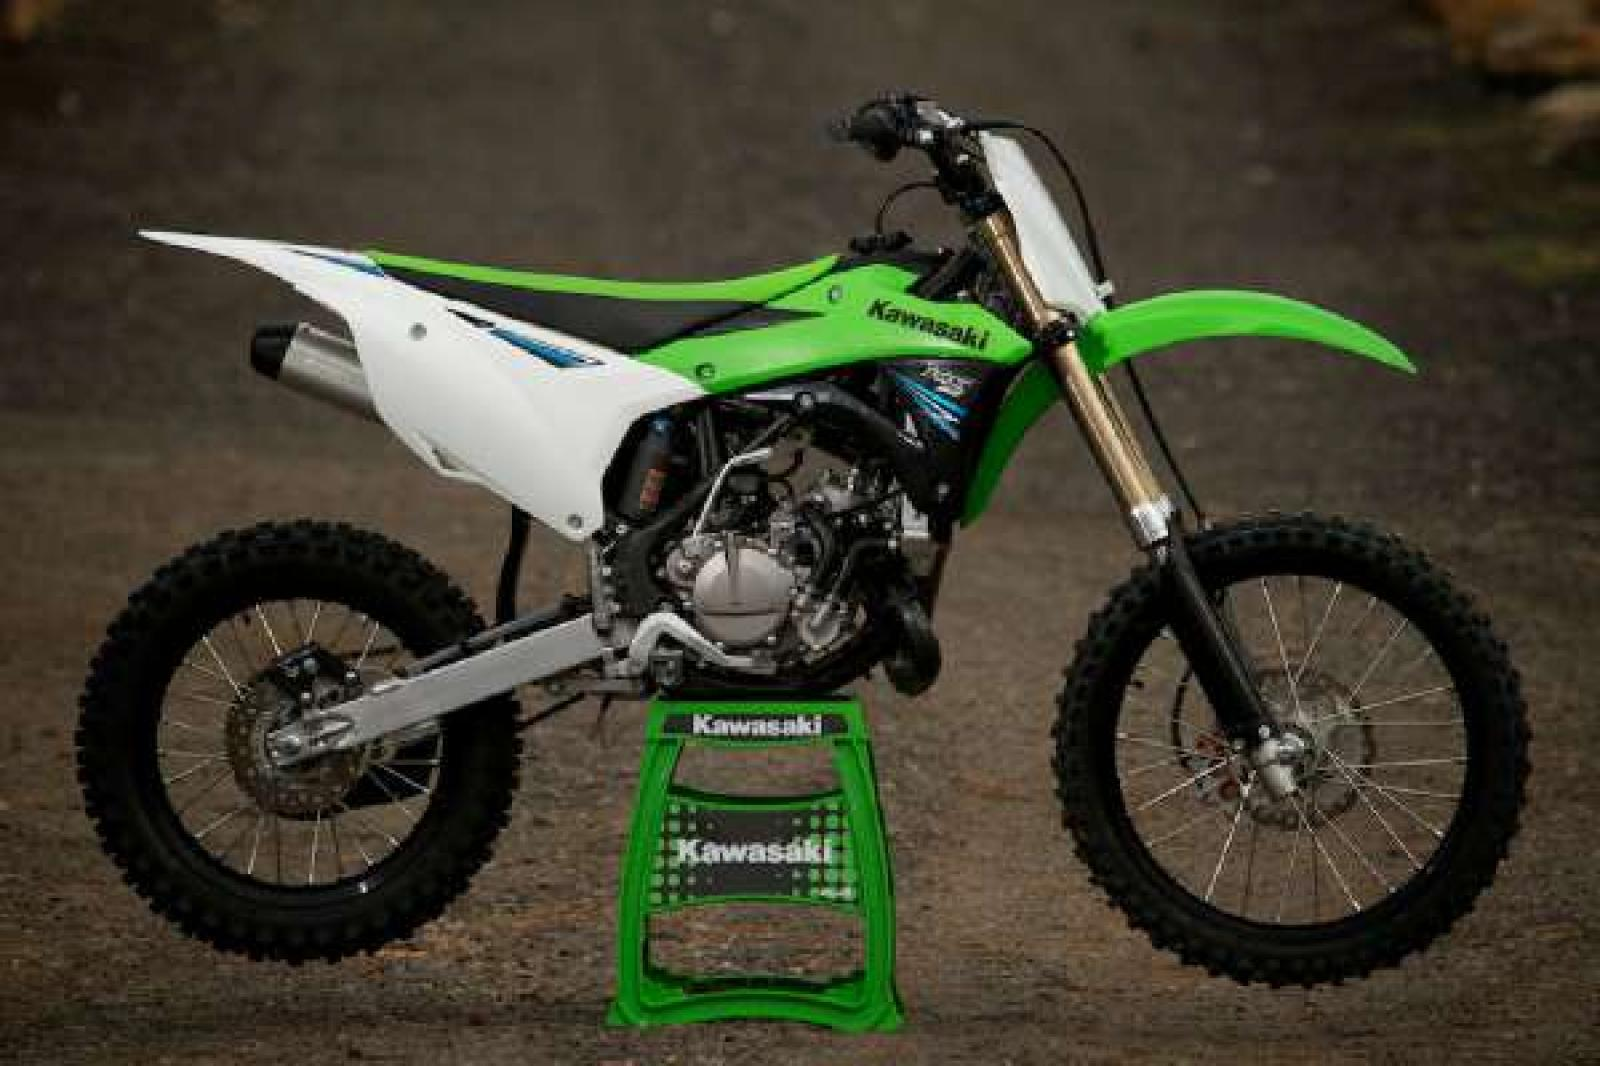 hight resolution of kawasaki kx 85 kawasaki motorbikes trevor pope motorcycles parts2004 kawasaki kx85 ii moto zombdrive com